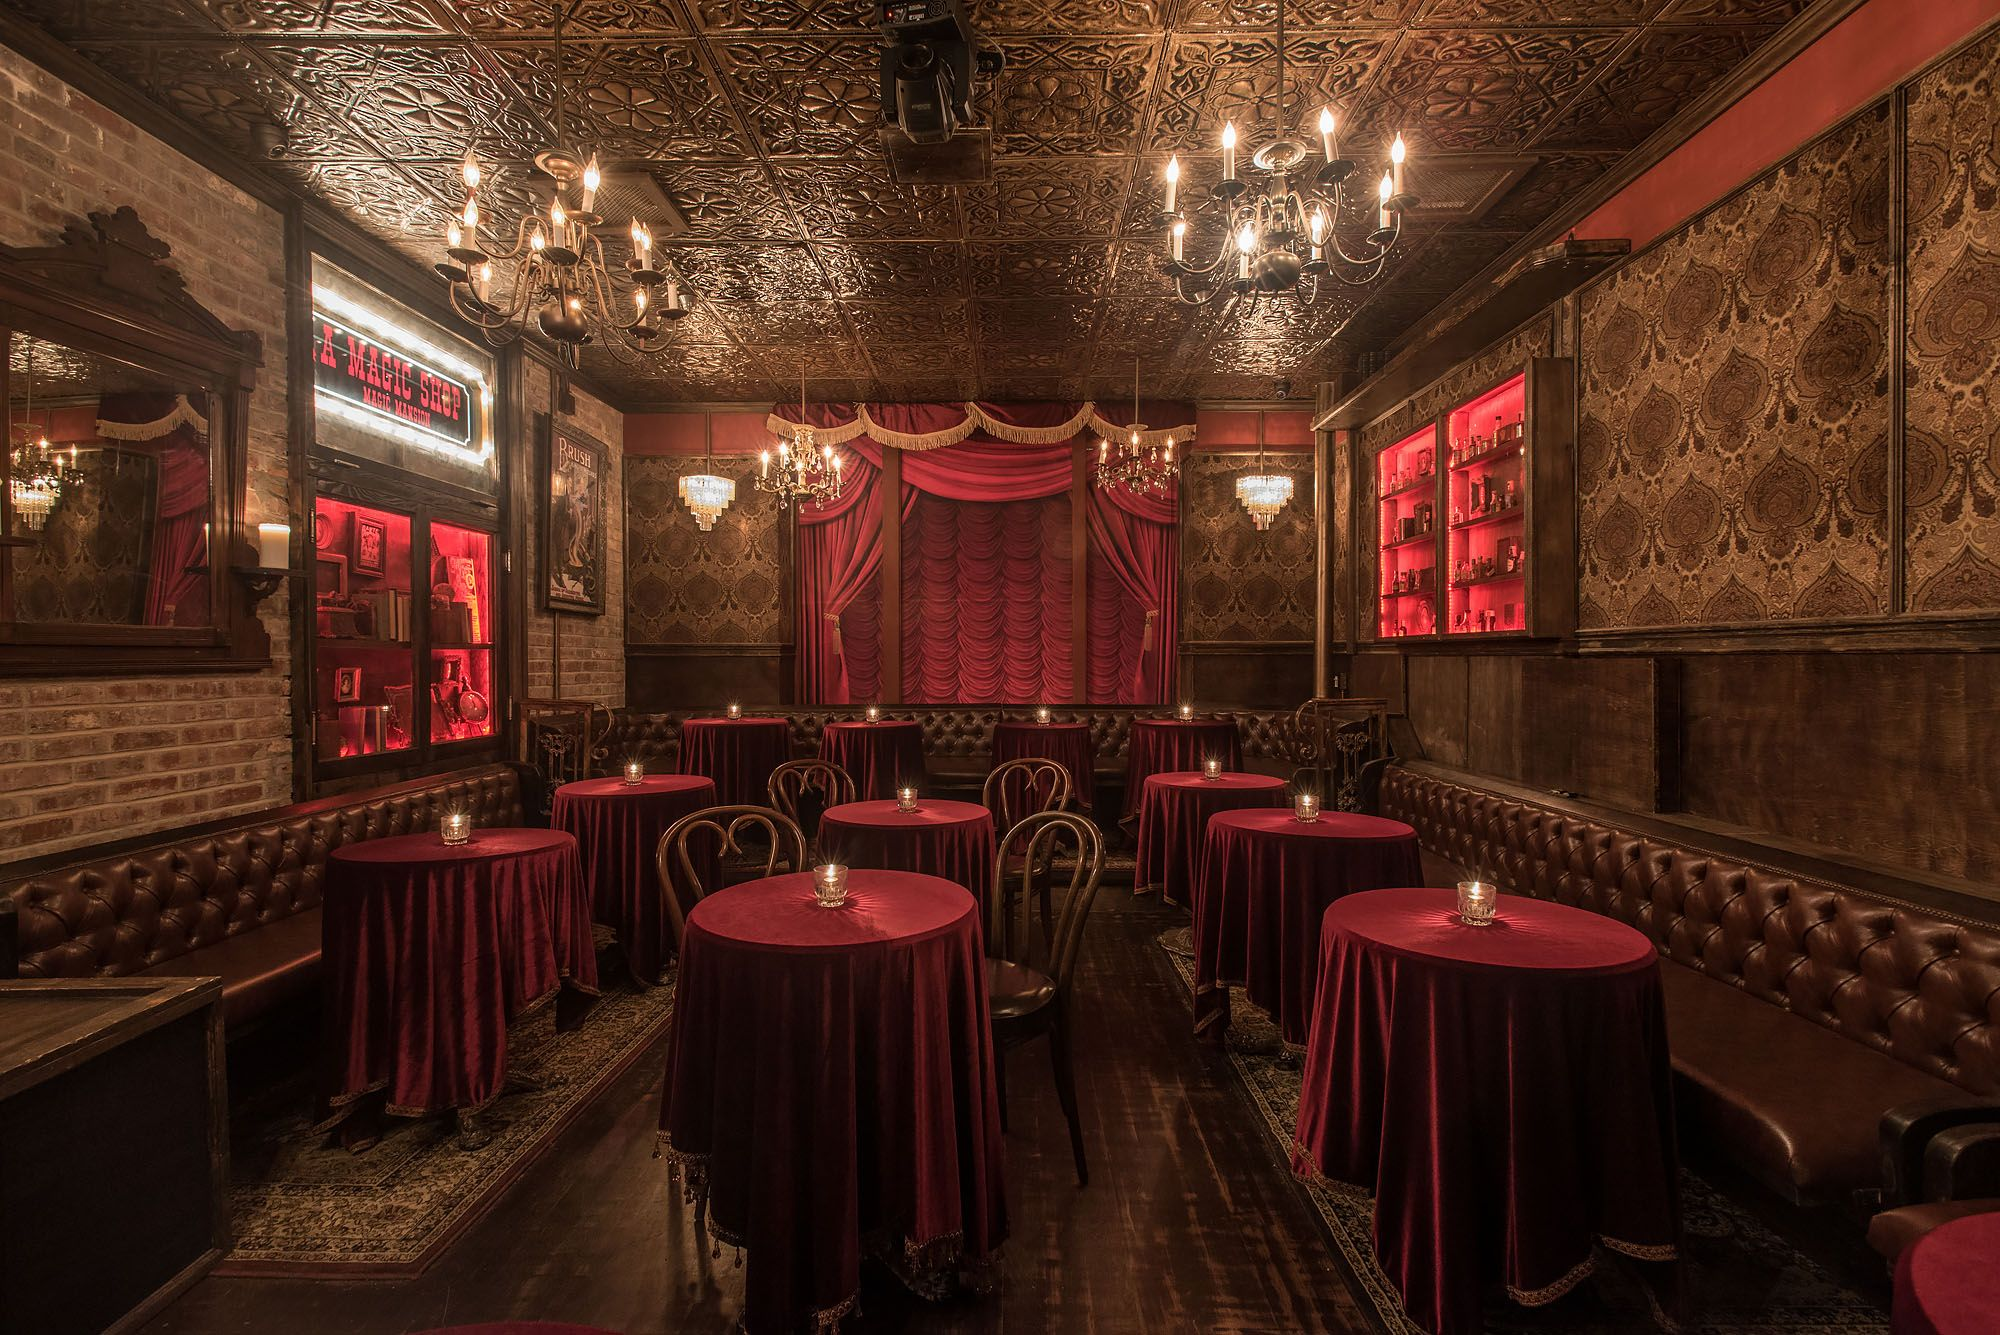 Black Rabbit Rose Is A Stunning Magic Show Theater In Hollywood Bars In Hollywood Los Angeles Fancy Restaurant